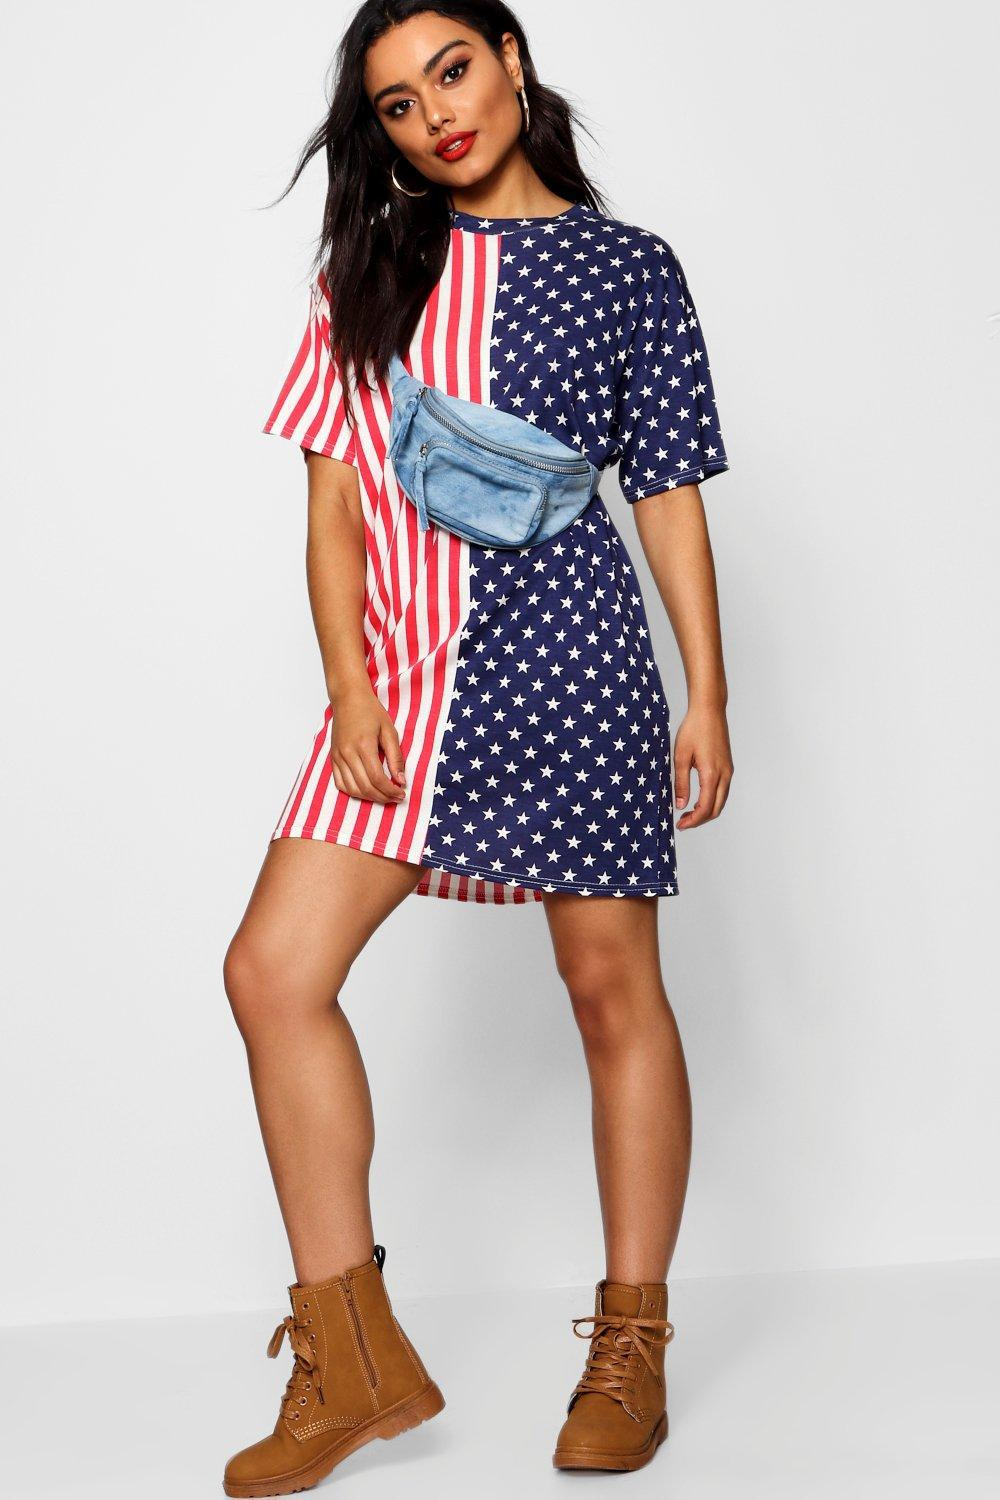 a725a1cd7e75 Boohoo Stars & Stripes Oversized T Shirt Dress in Red - Lyst